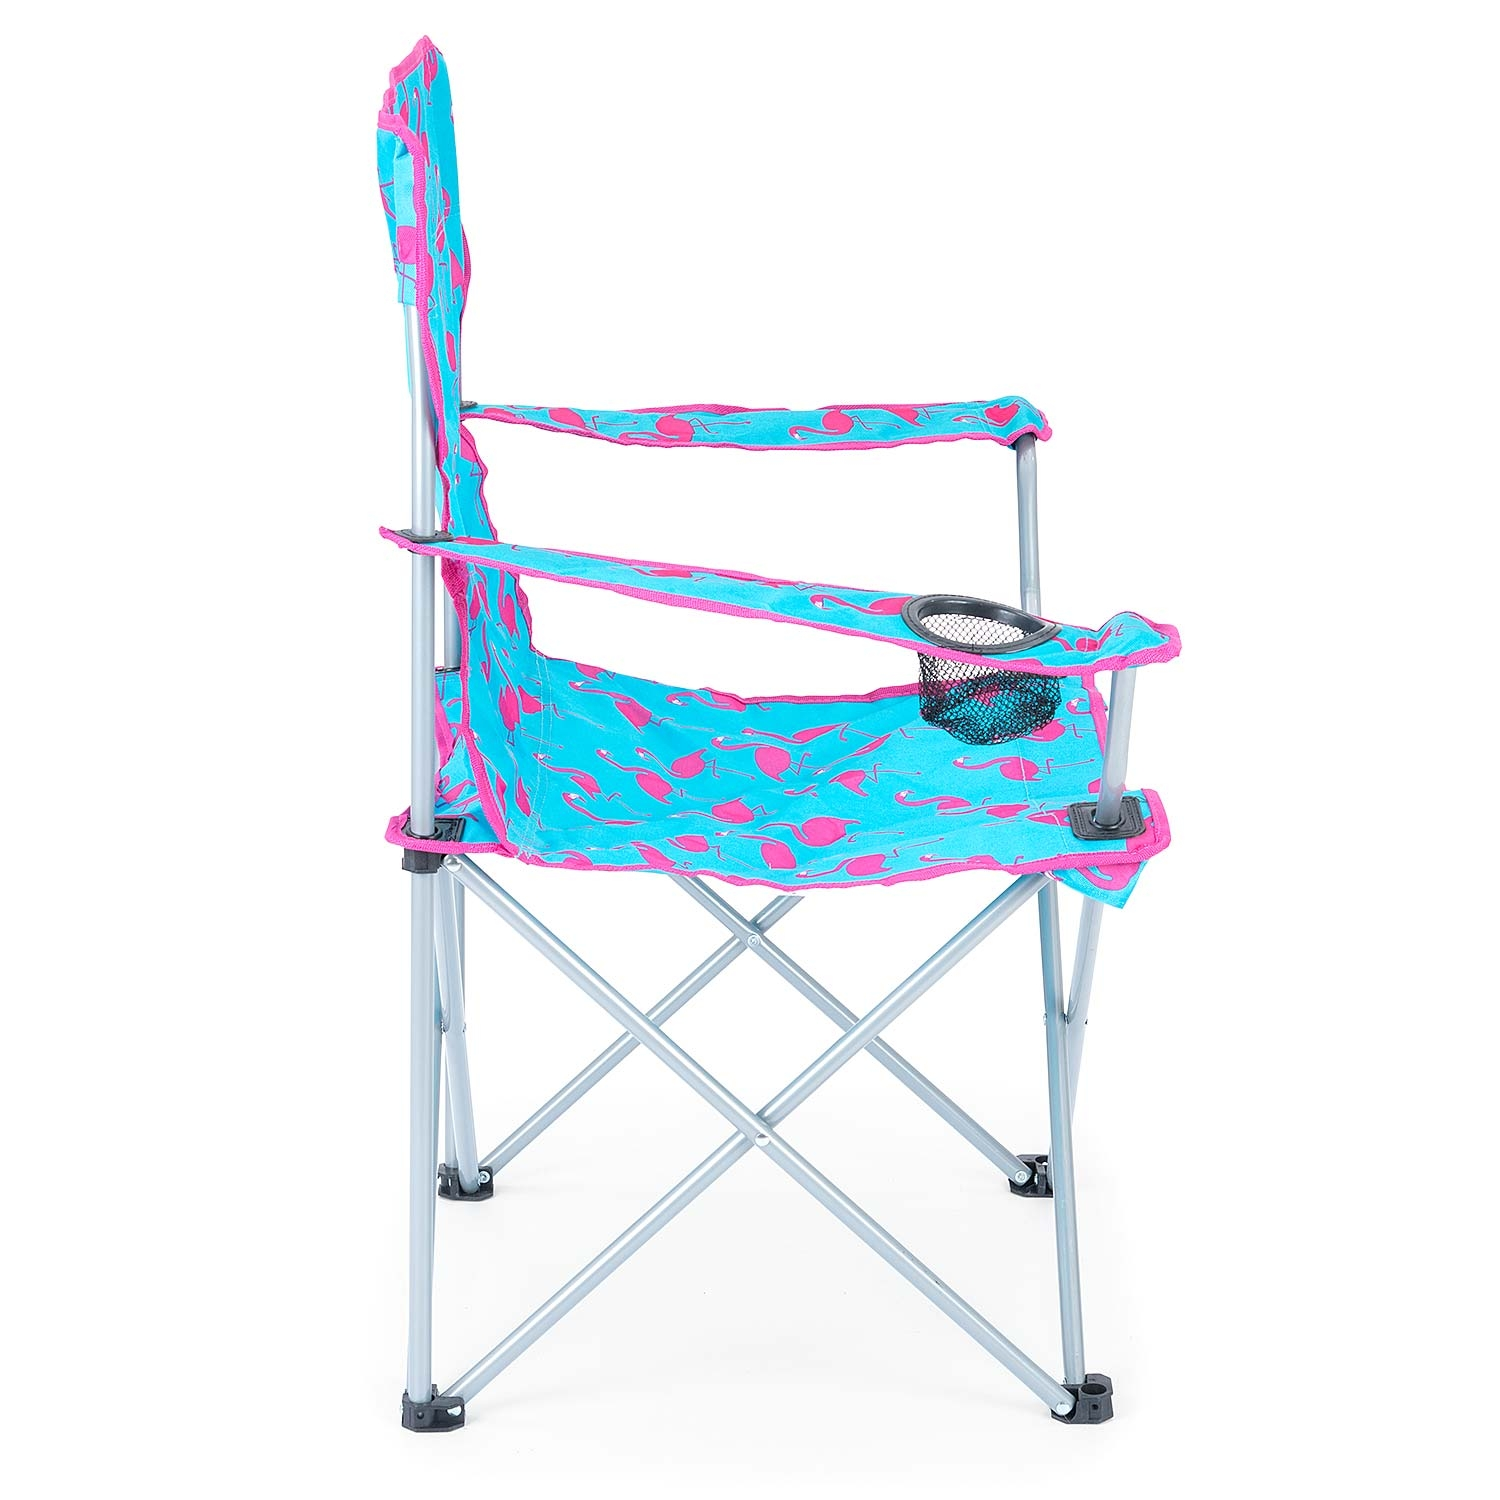 Folding-Camping-Chair-Lightweight-Beach-Festival-Outdoor-Travel-Seat-Flamingo thumbnail 6